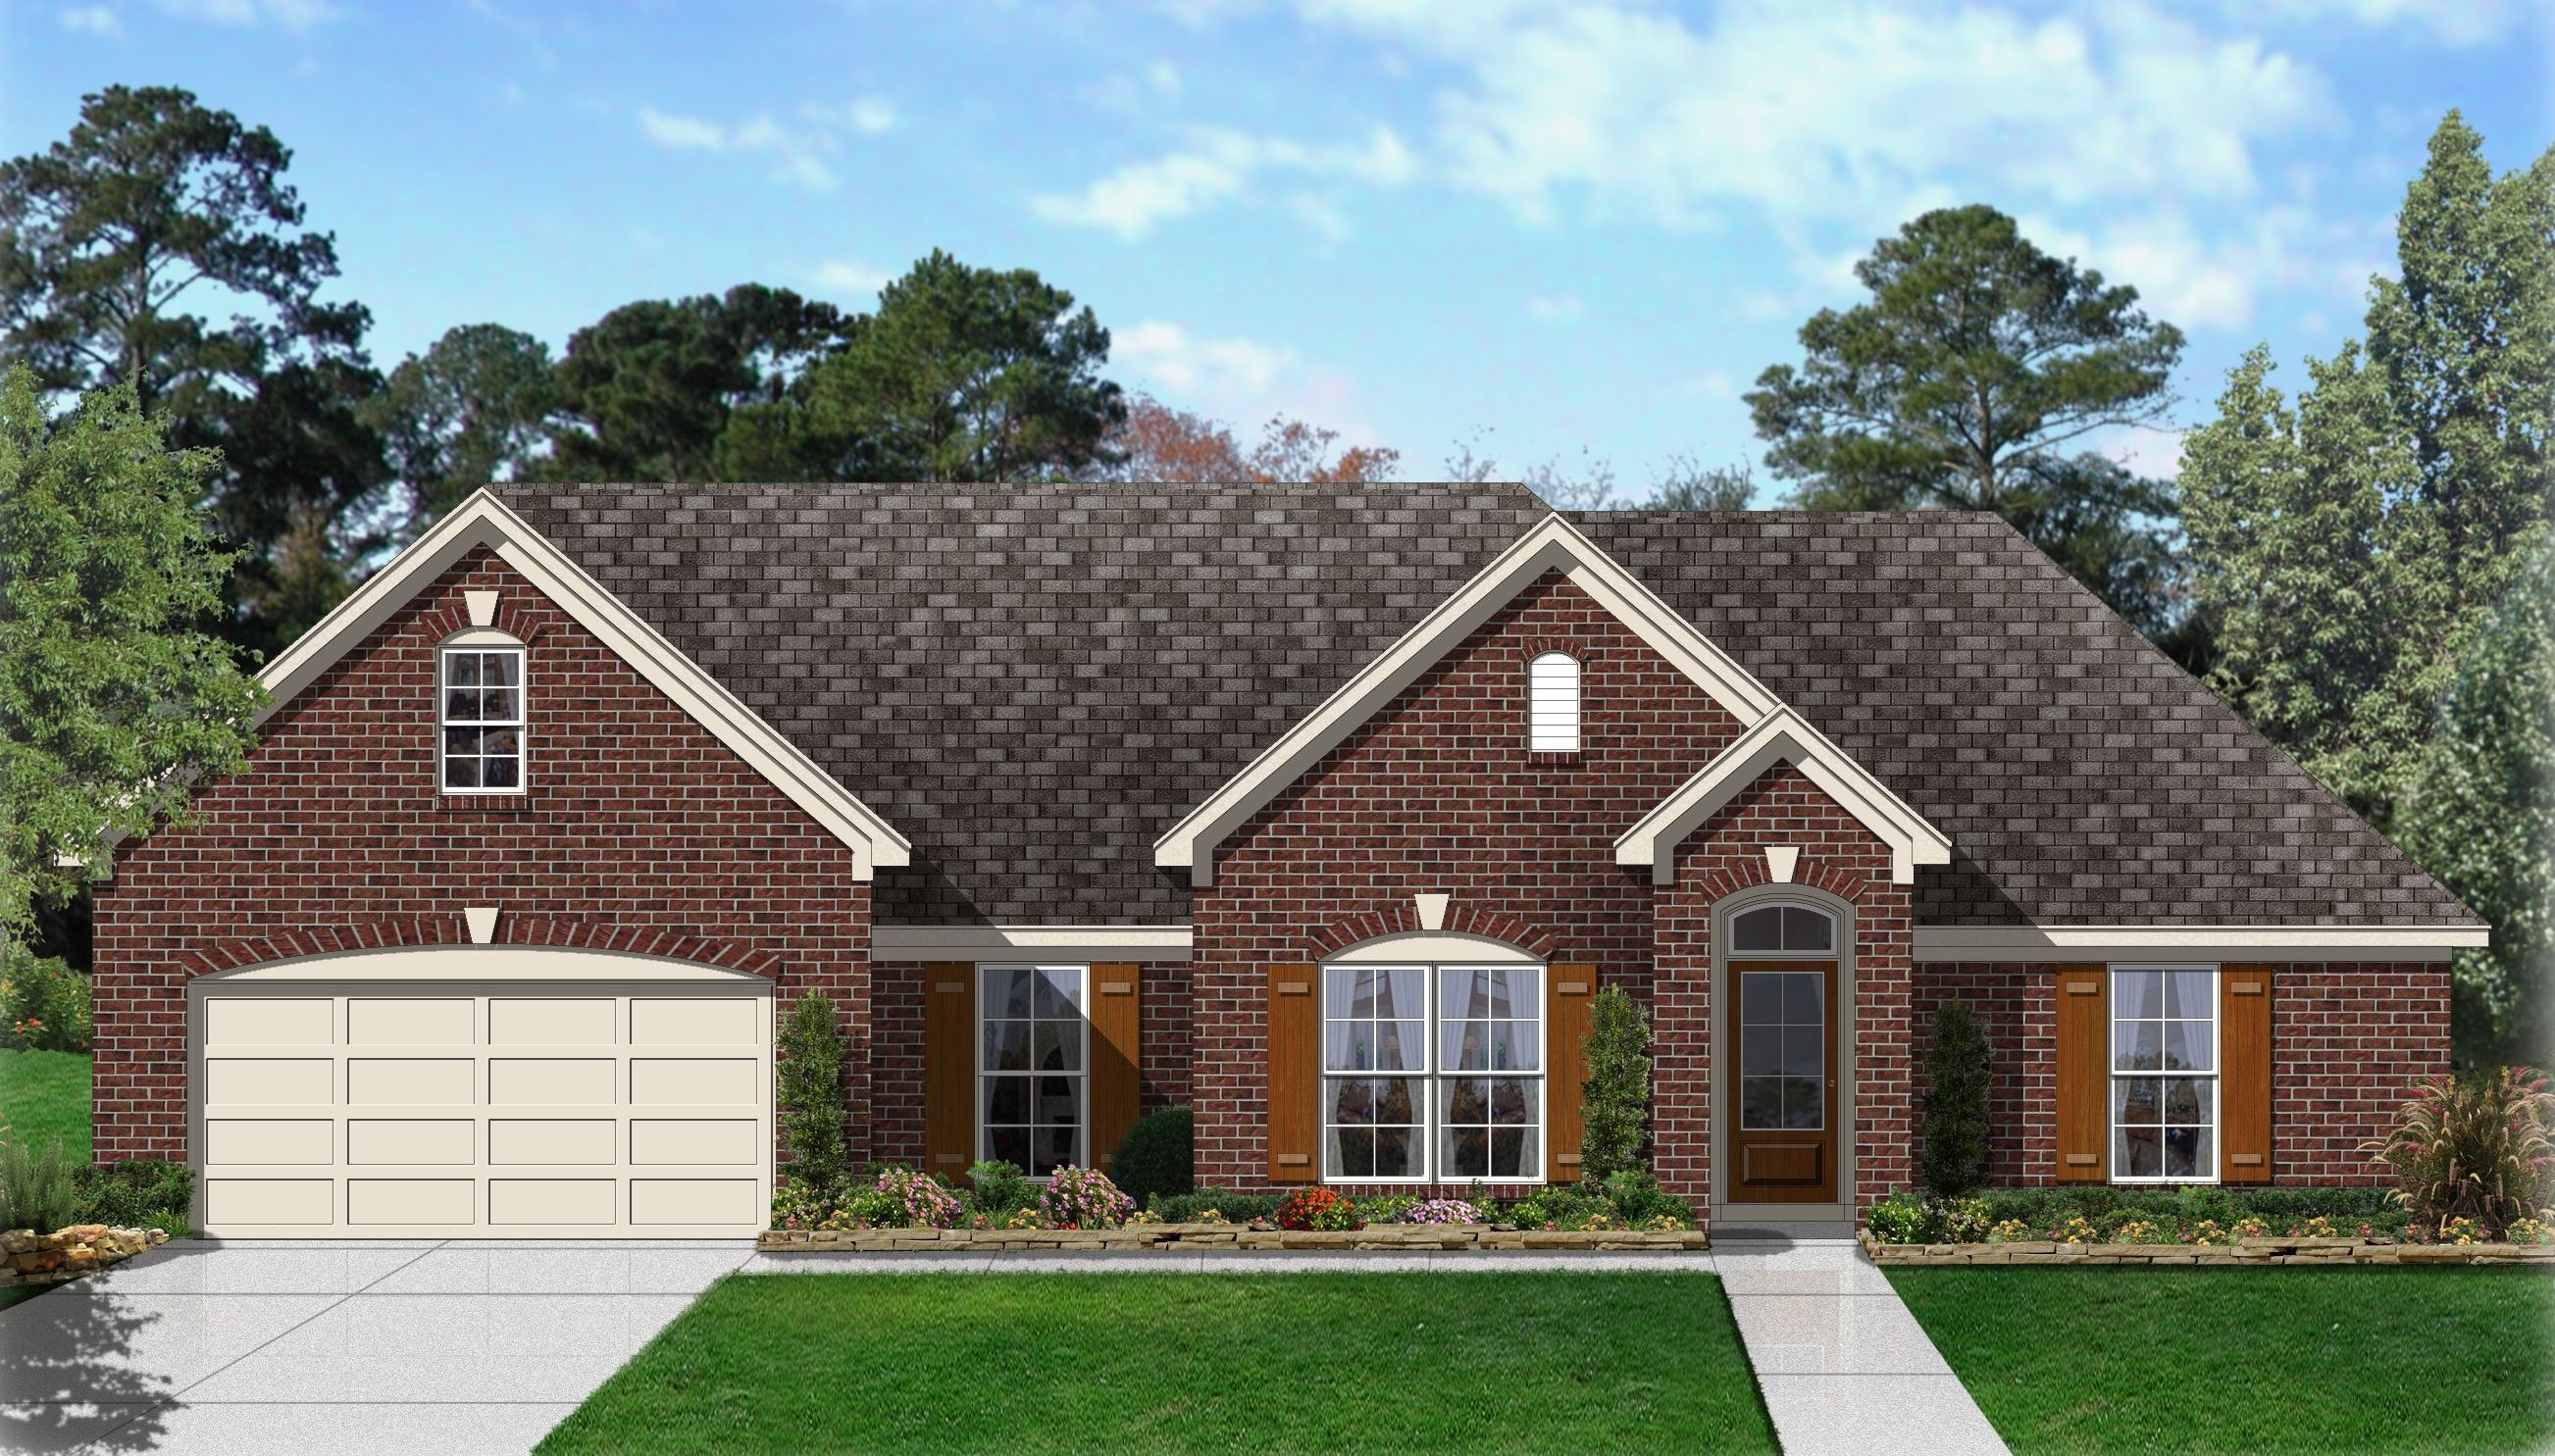 Brick ranch house plan 68011hr 1st floor master suite for Brick ranch house plans